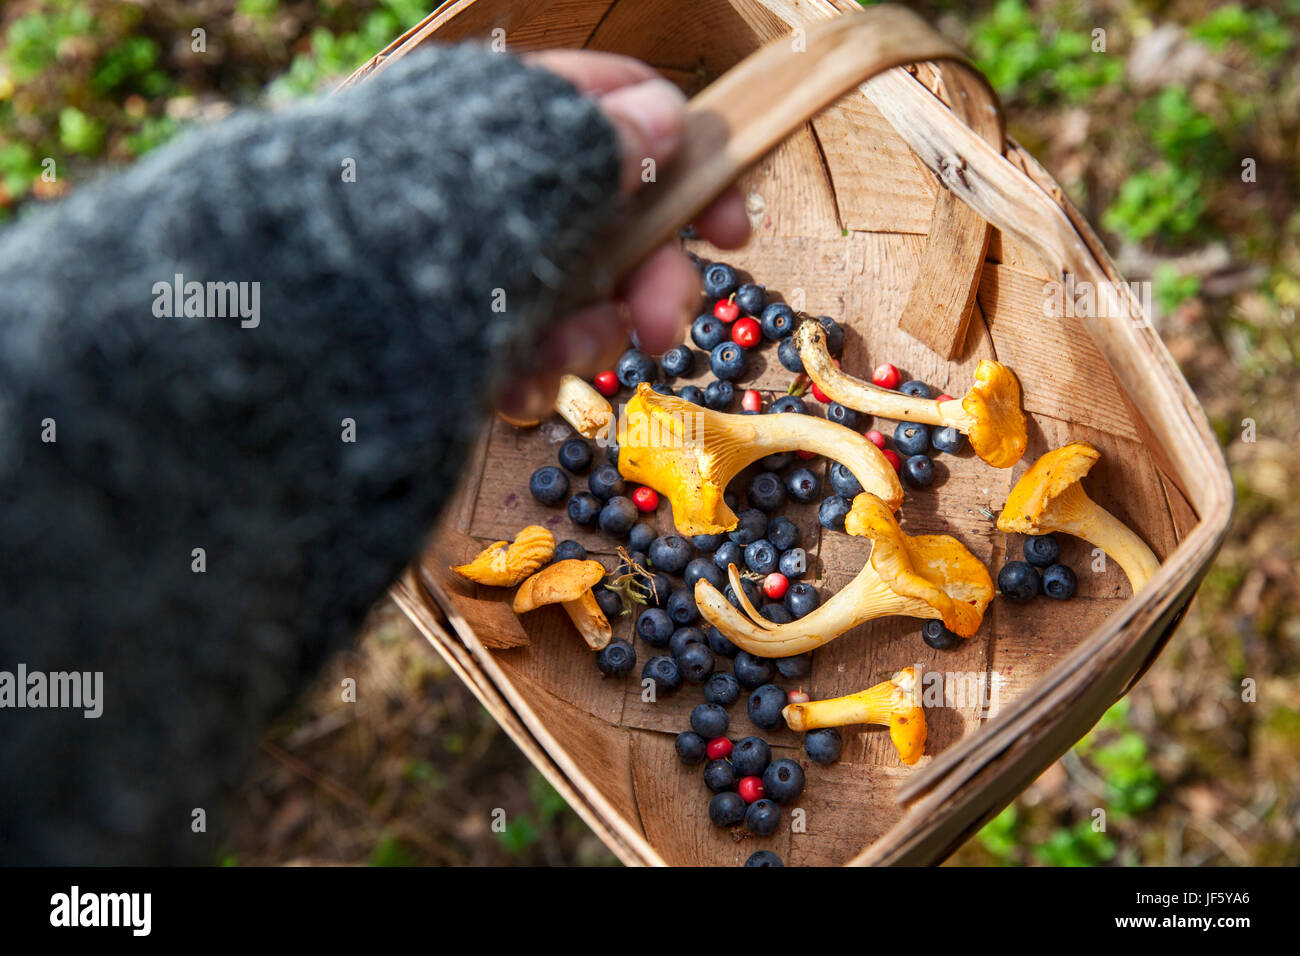 Child hand holding basket with berries and chanterelles - Stock Image